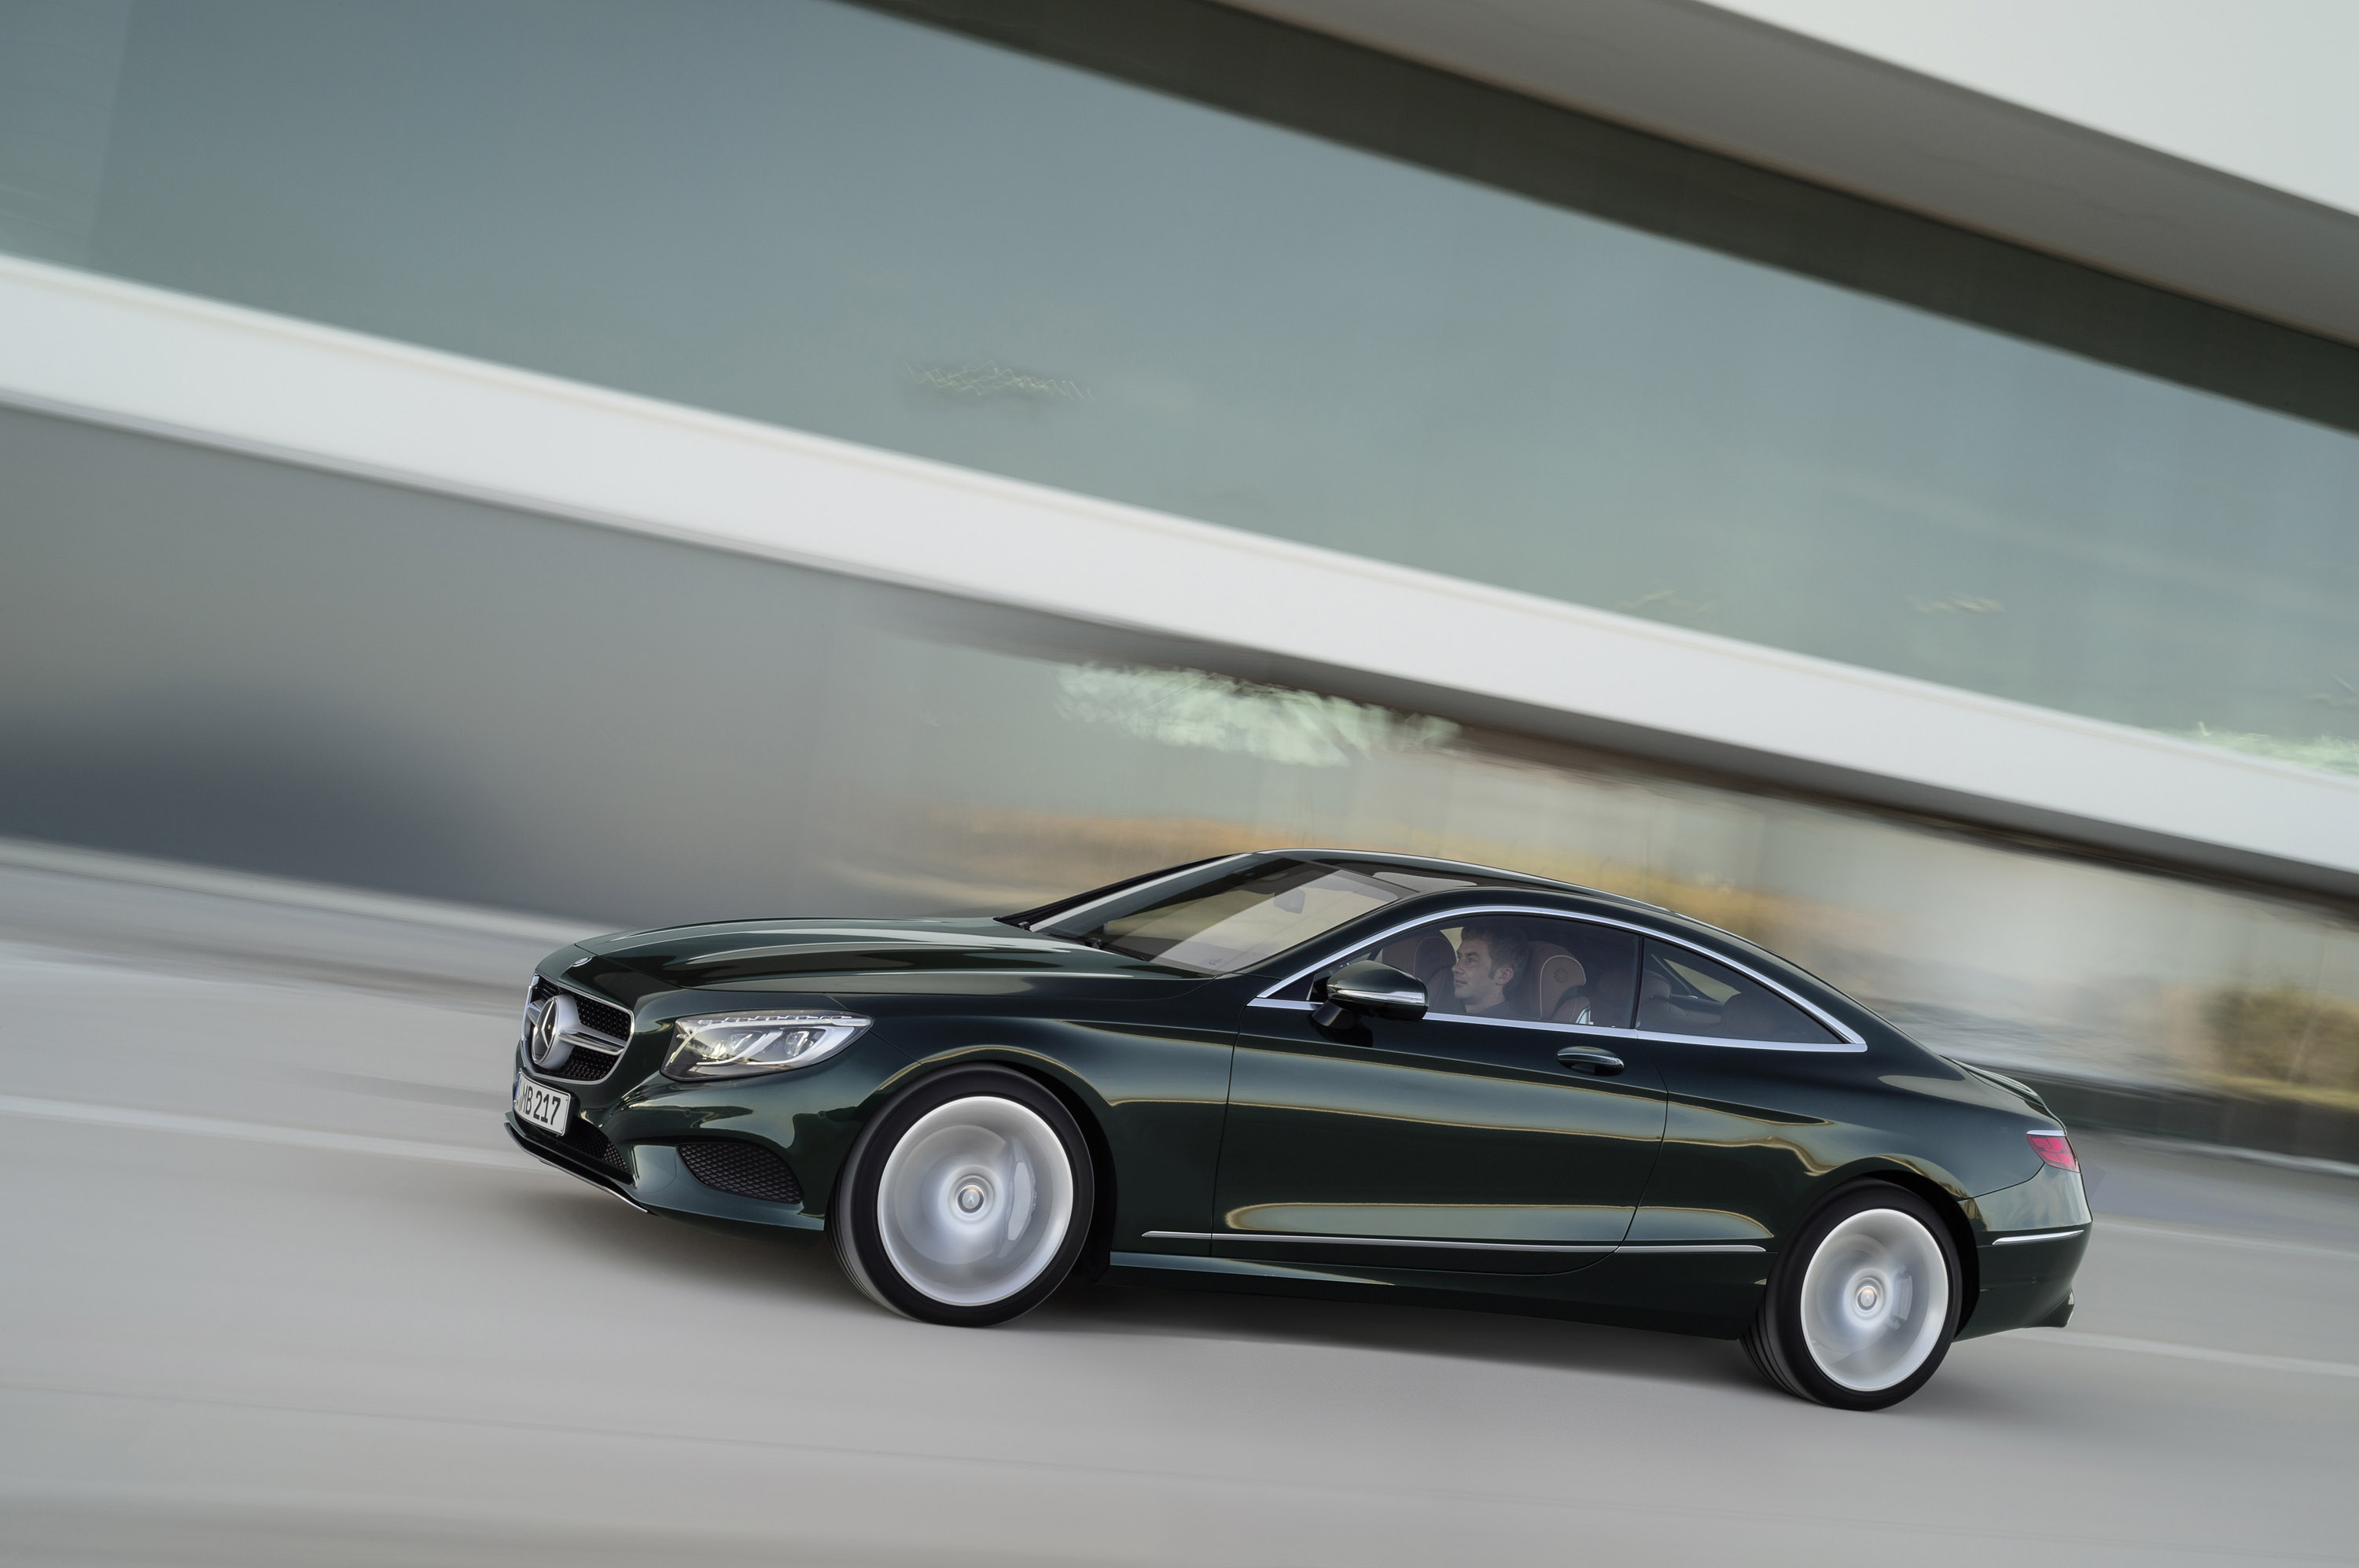 2015 mercedes benz s class coupe full details. Black Bedroom Furniture Sets. Home Design Ideas